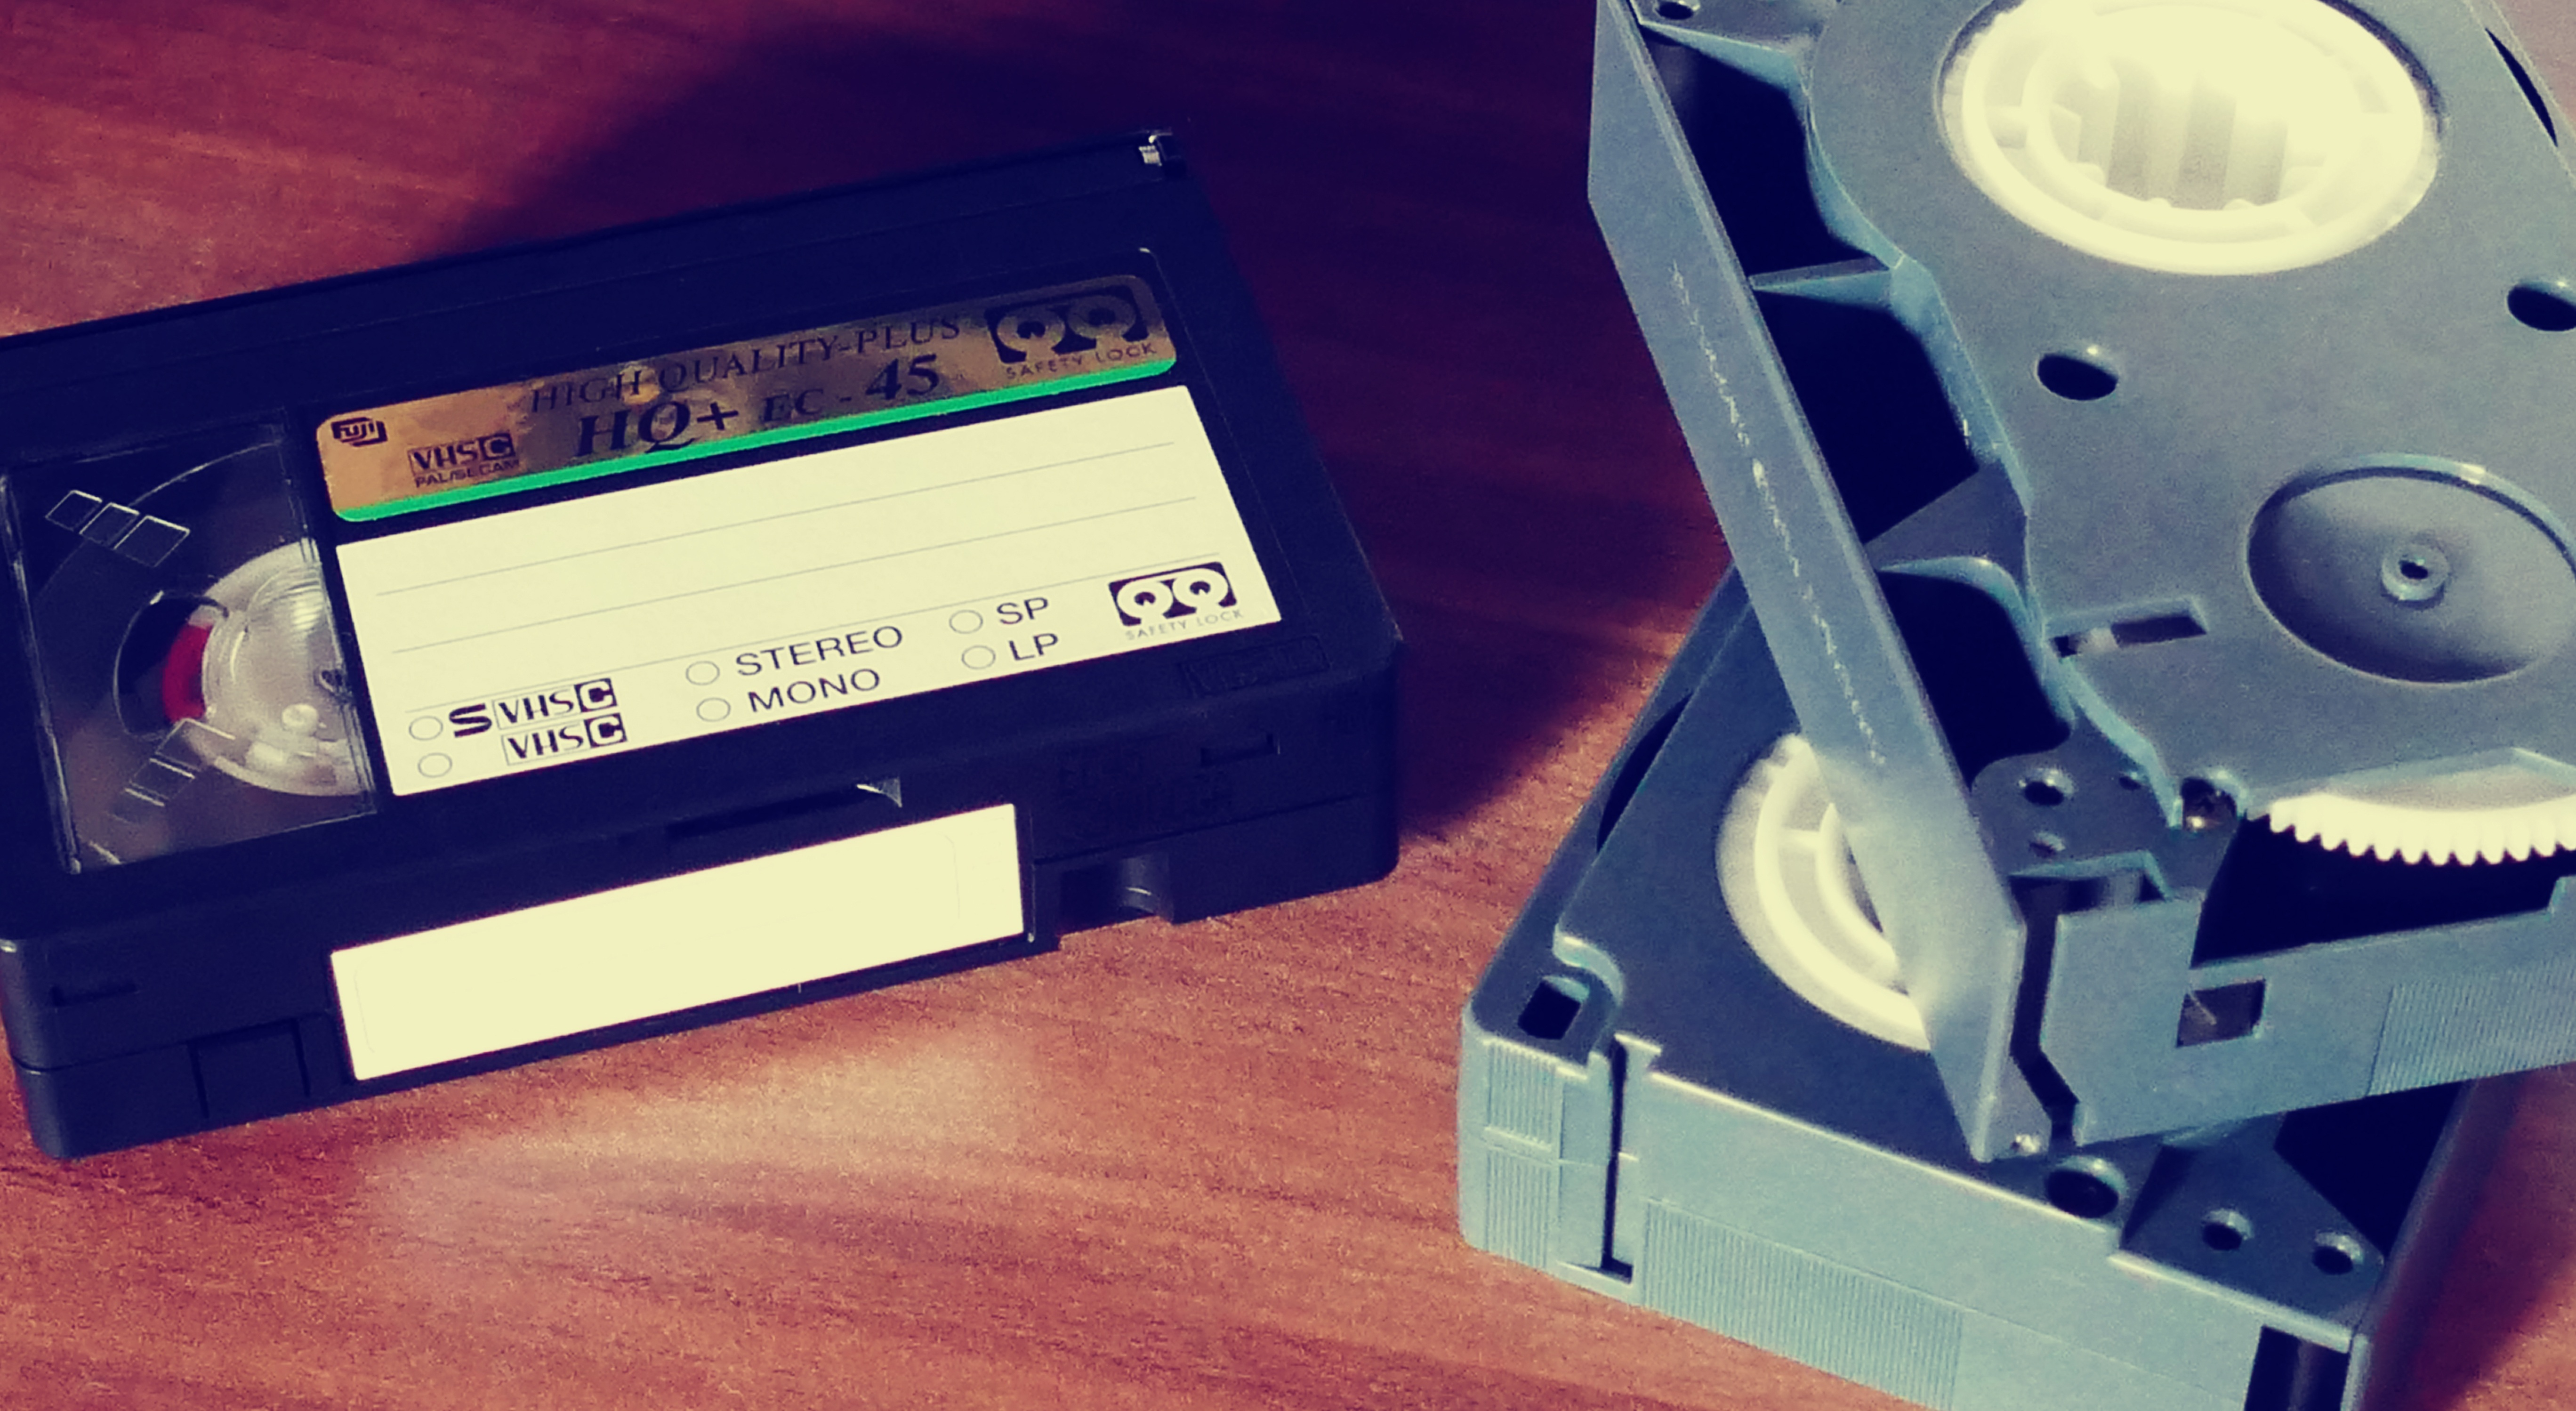 canva-3-vhs-tape-on-top-of-table.jpg